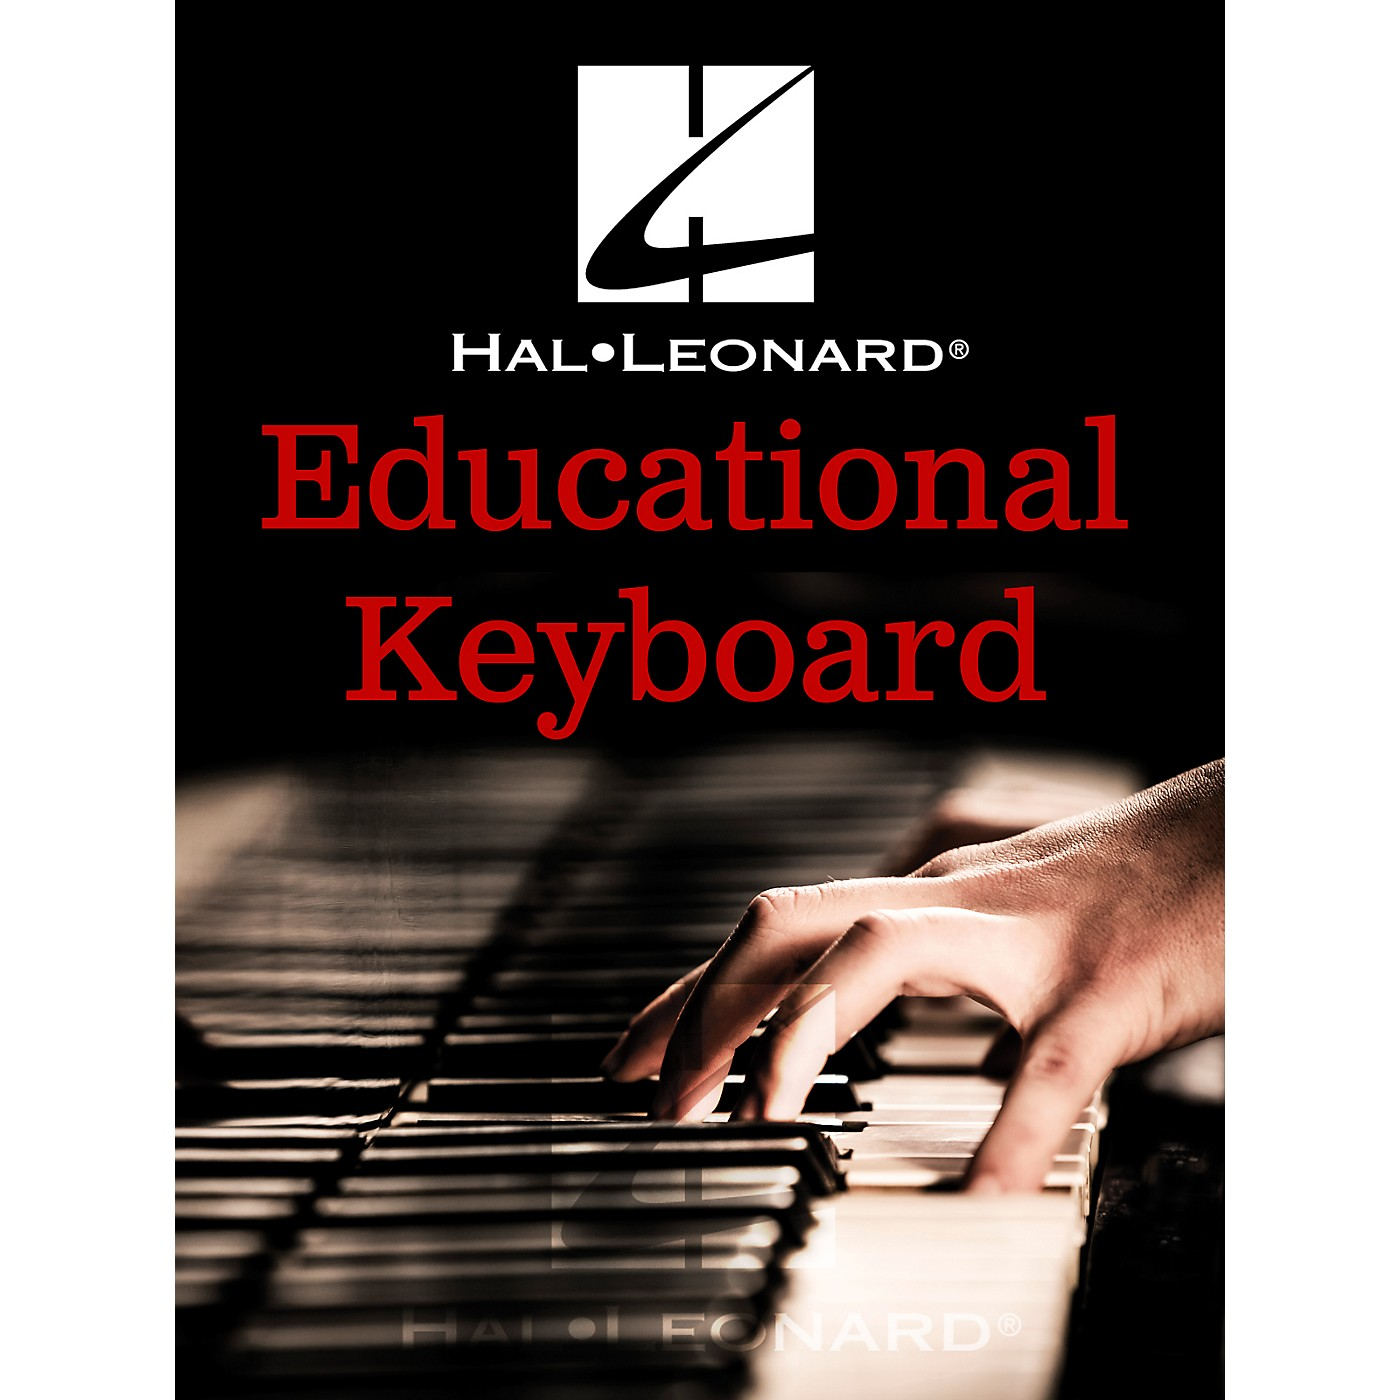 Hal Leonard Pointer System for Piano - Instruction Book 4 thumbnail